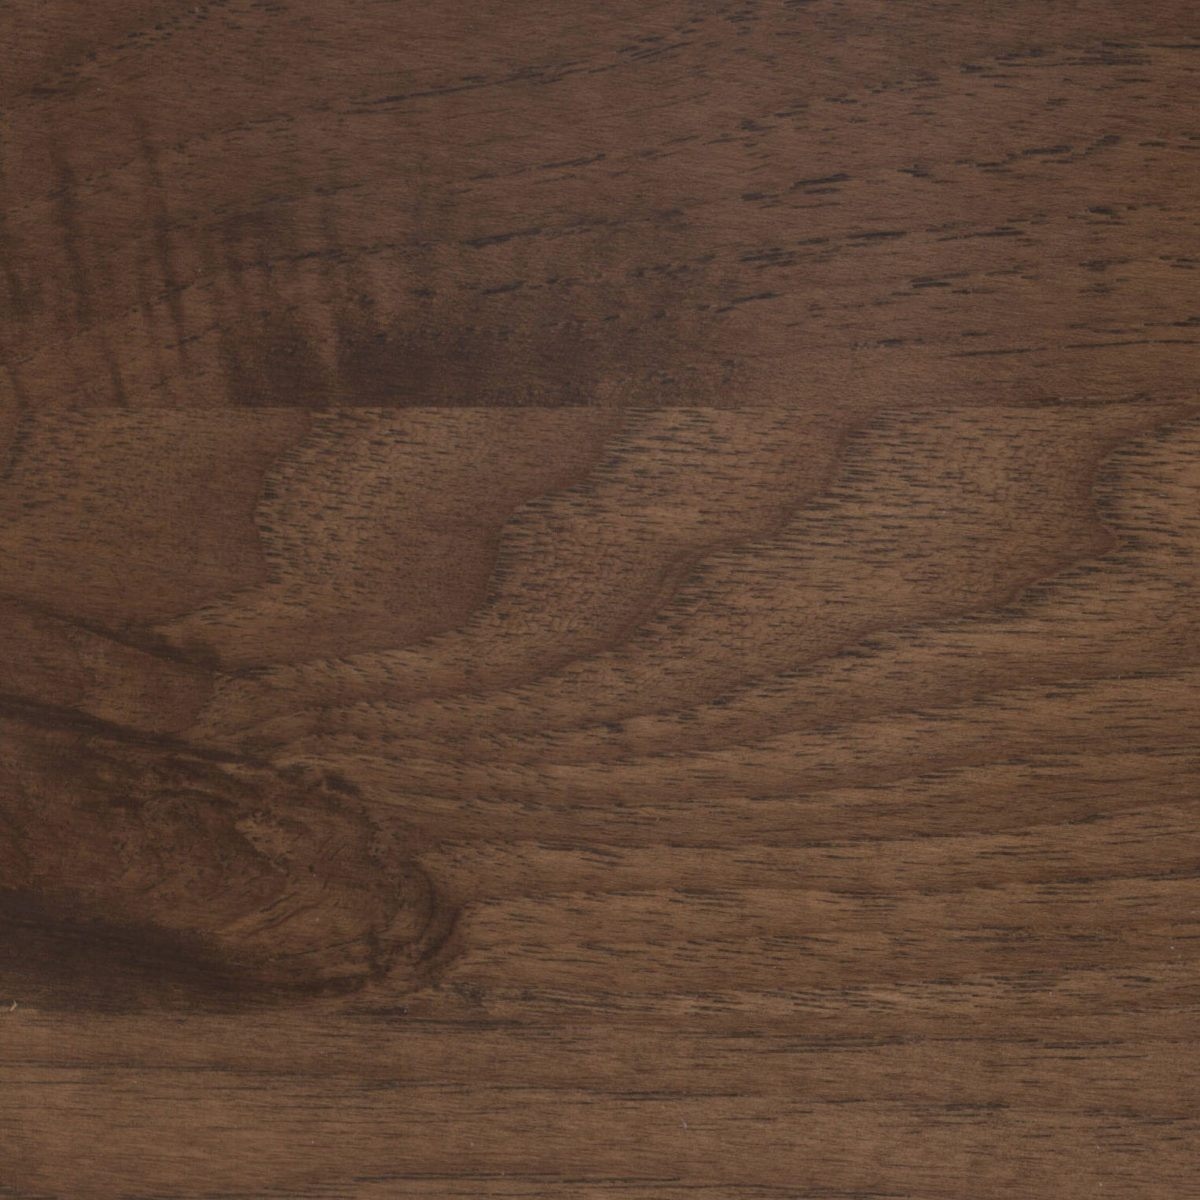 33 Hickory Wood Stain Sample